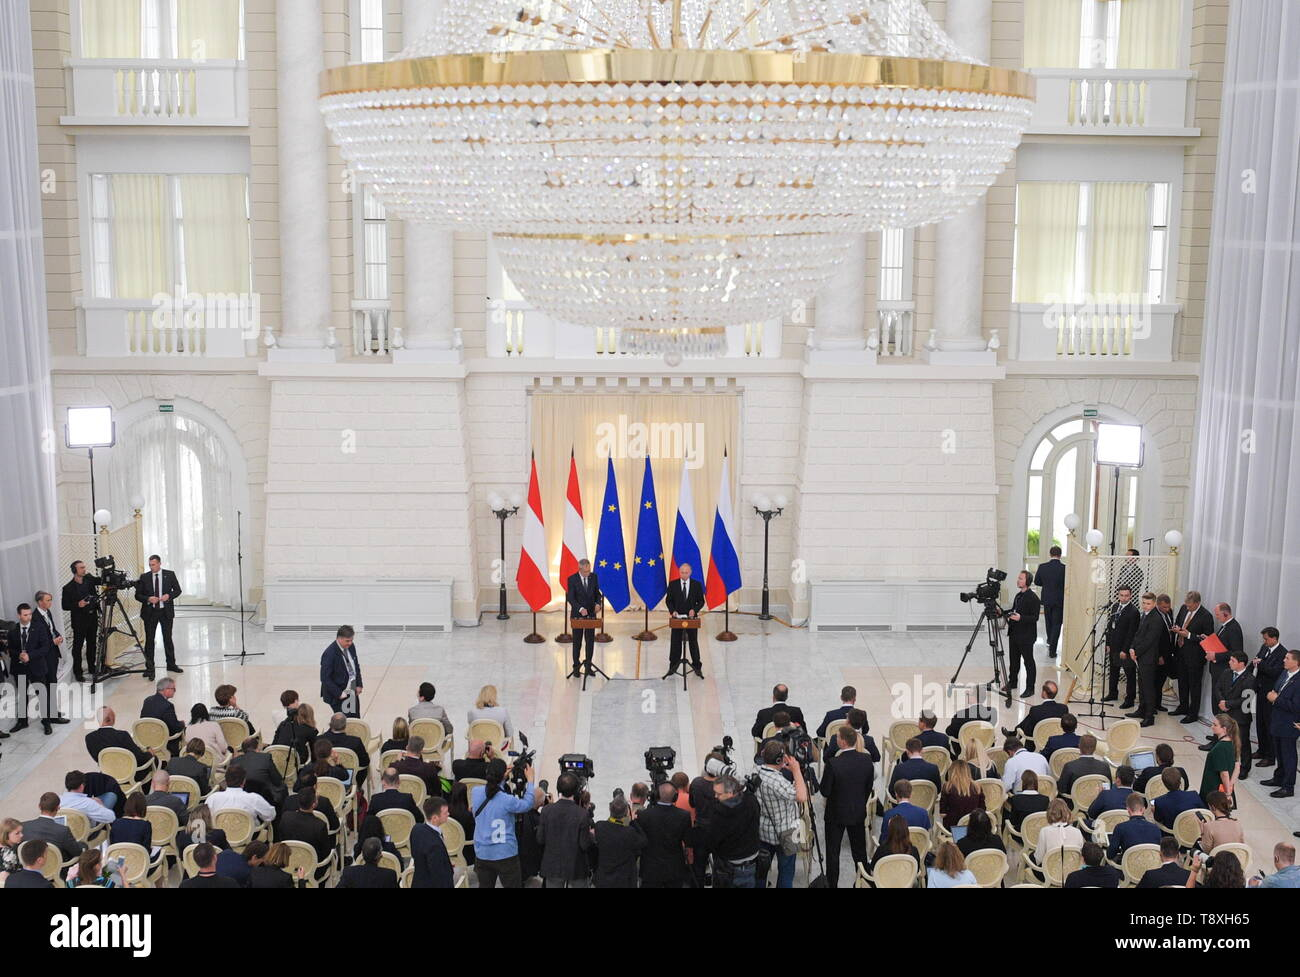 Sochi, Russia. 15th May, 2019. SOCHI, RUSSIA - MAY 15, 2019: Austria's President Alexander Van der Bellen and Russia's President Vladimir Putin (L-R back) at a joint press conference following their meeting at the Rus health resort. Alexei Druzhinin/Russian Presidential Press and Information Office/TASS Credit: ITAR-TASS News Agency/Alamy Live News Stock Photo